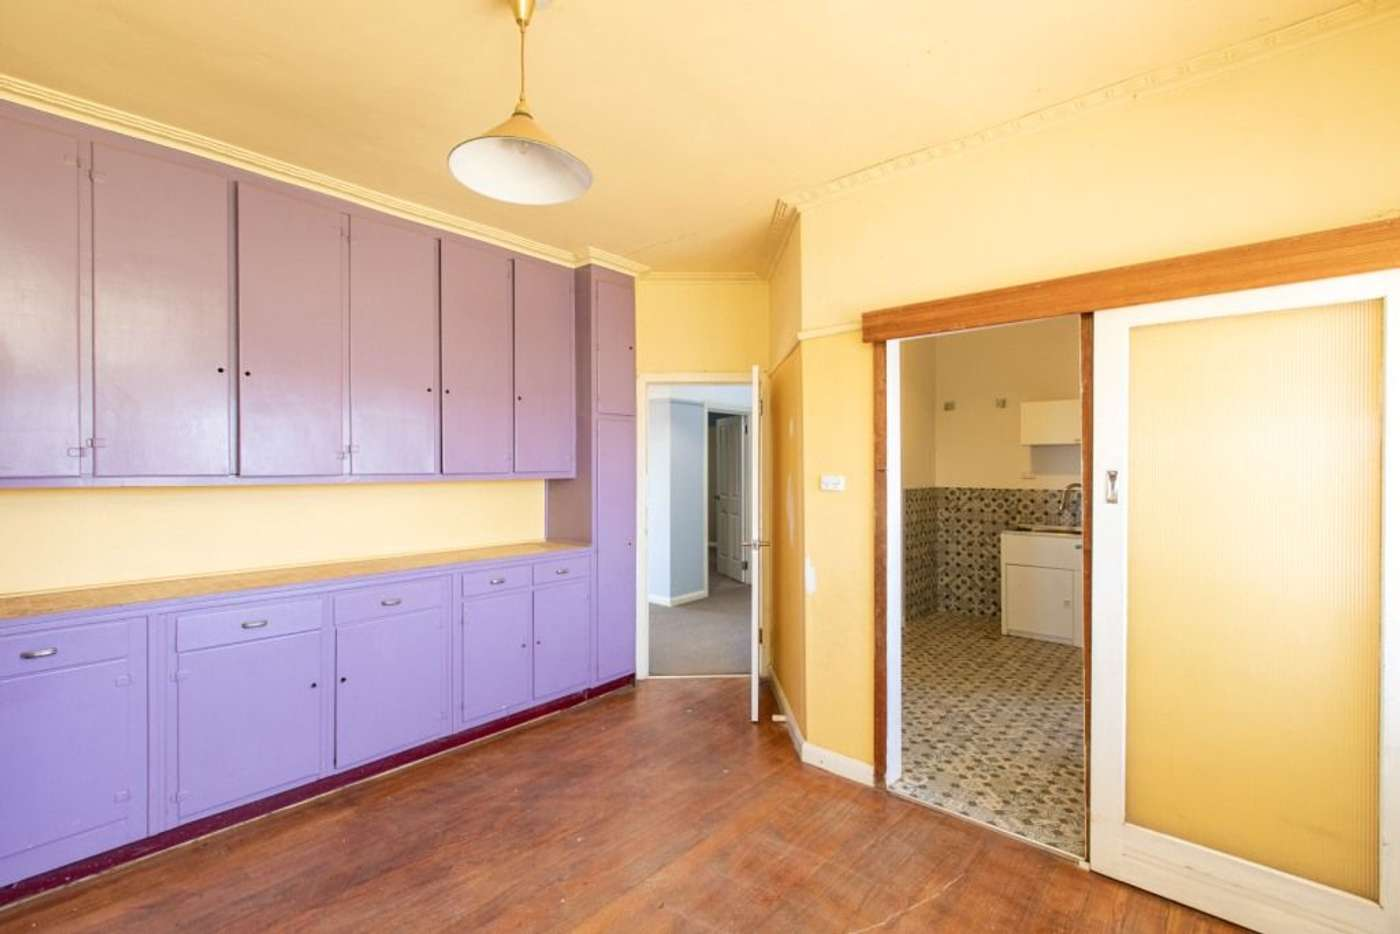 Sixth view of Homely house listing, 36 Quandong Avenue, Merbein VIC 3505